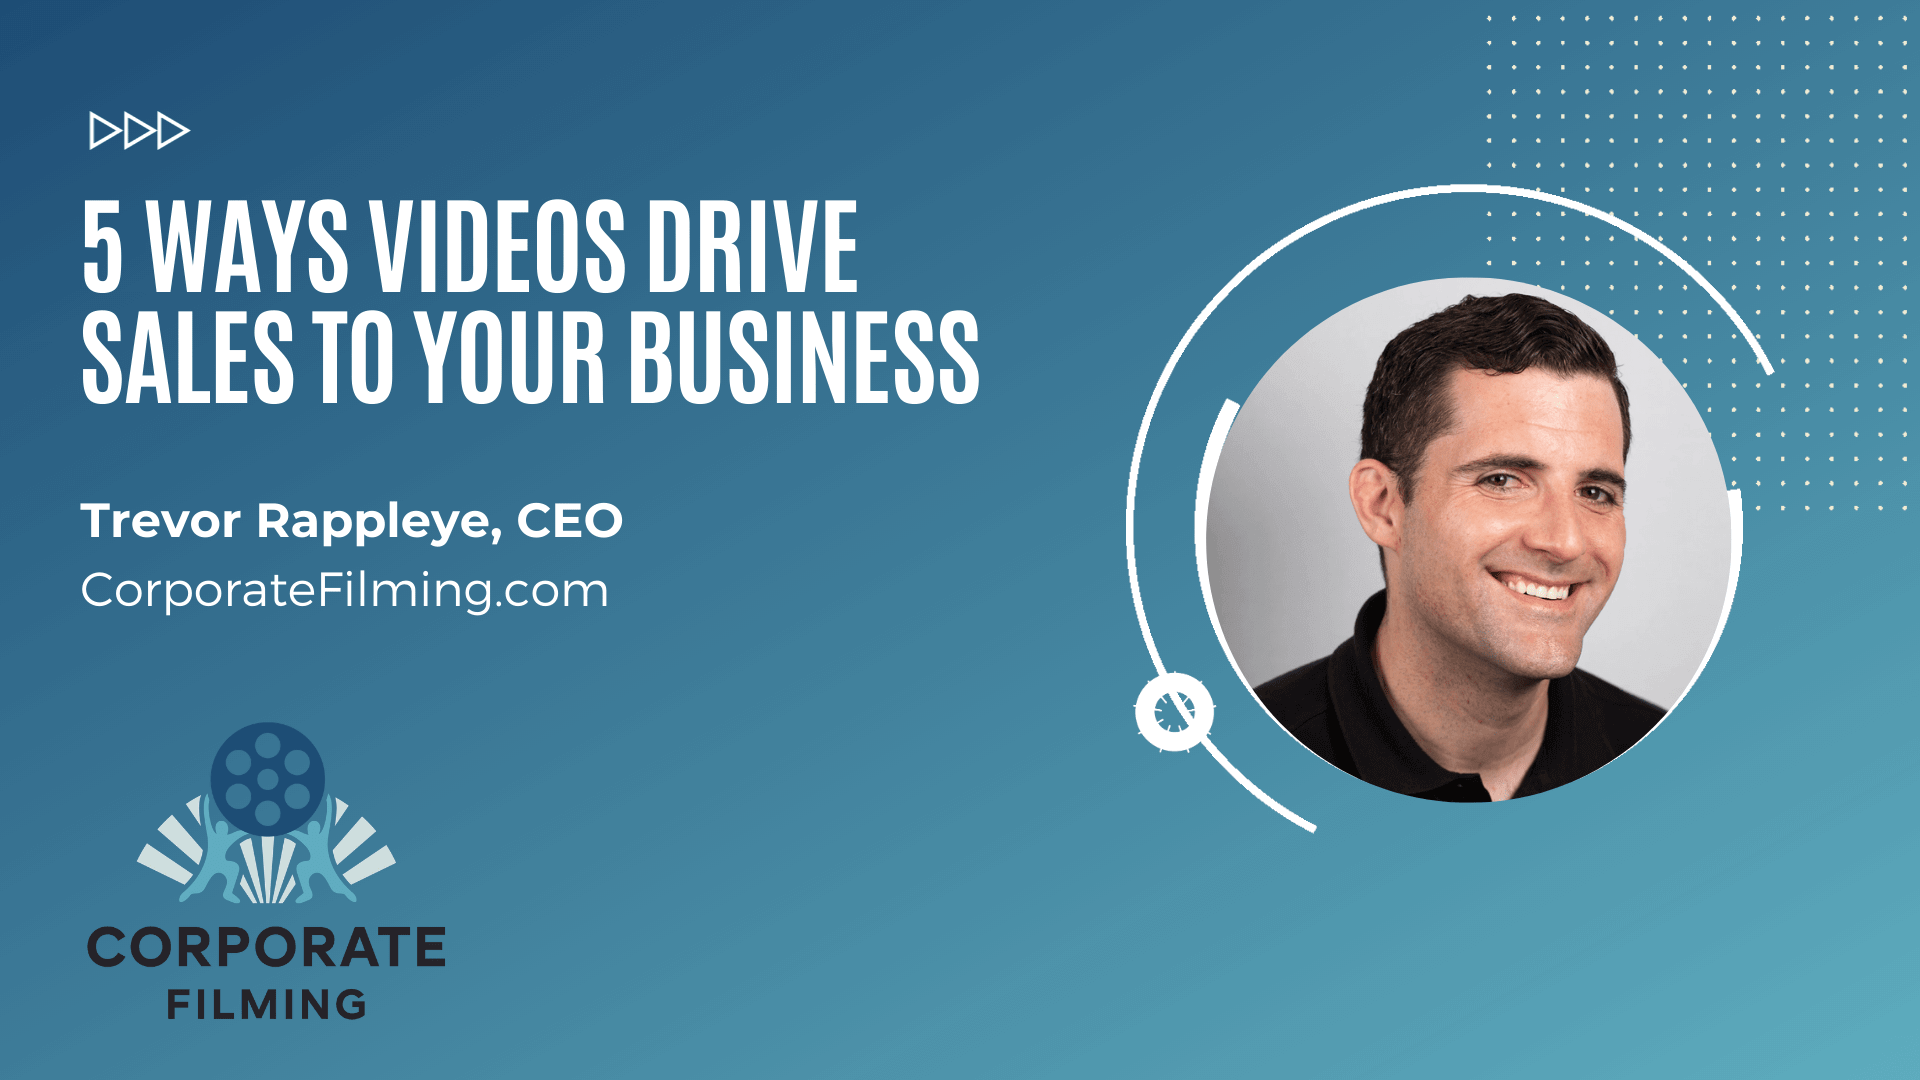 5 Ways Videos Drive Sales for Your Business